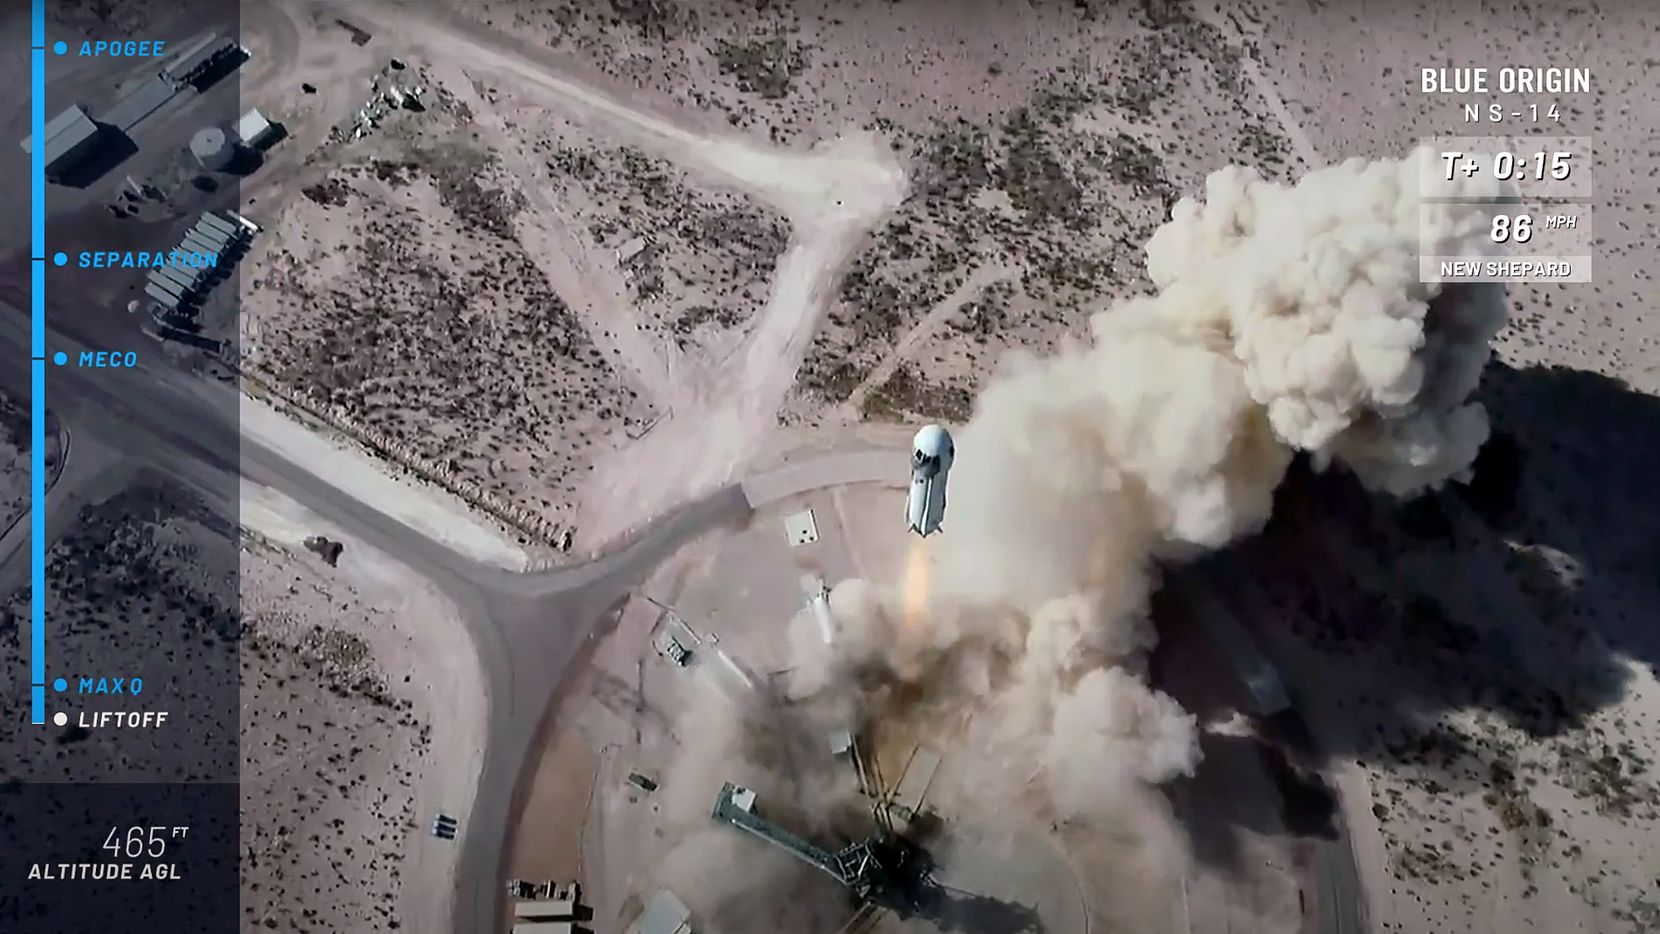 Blue Origin launches capsule to space from Van Horn with astronaut perks 6